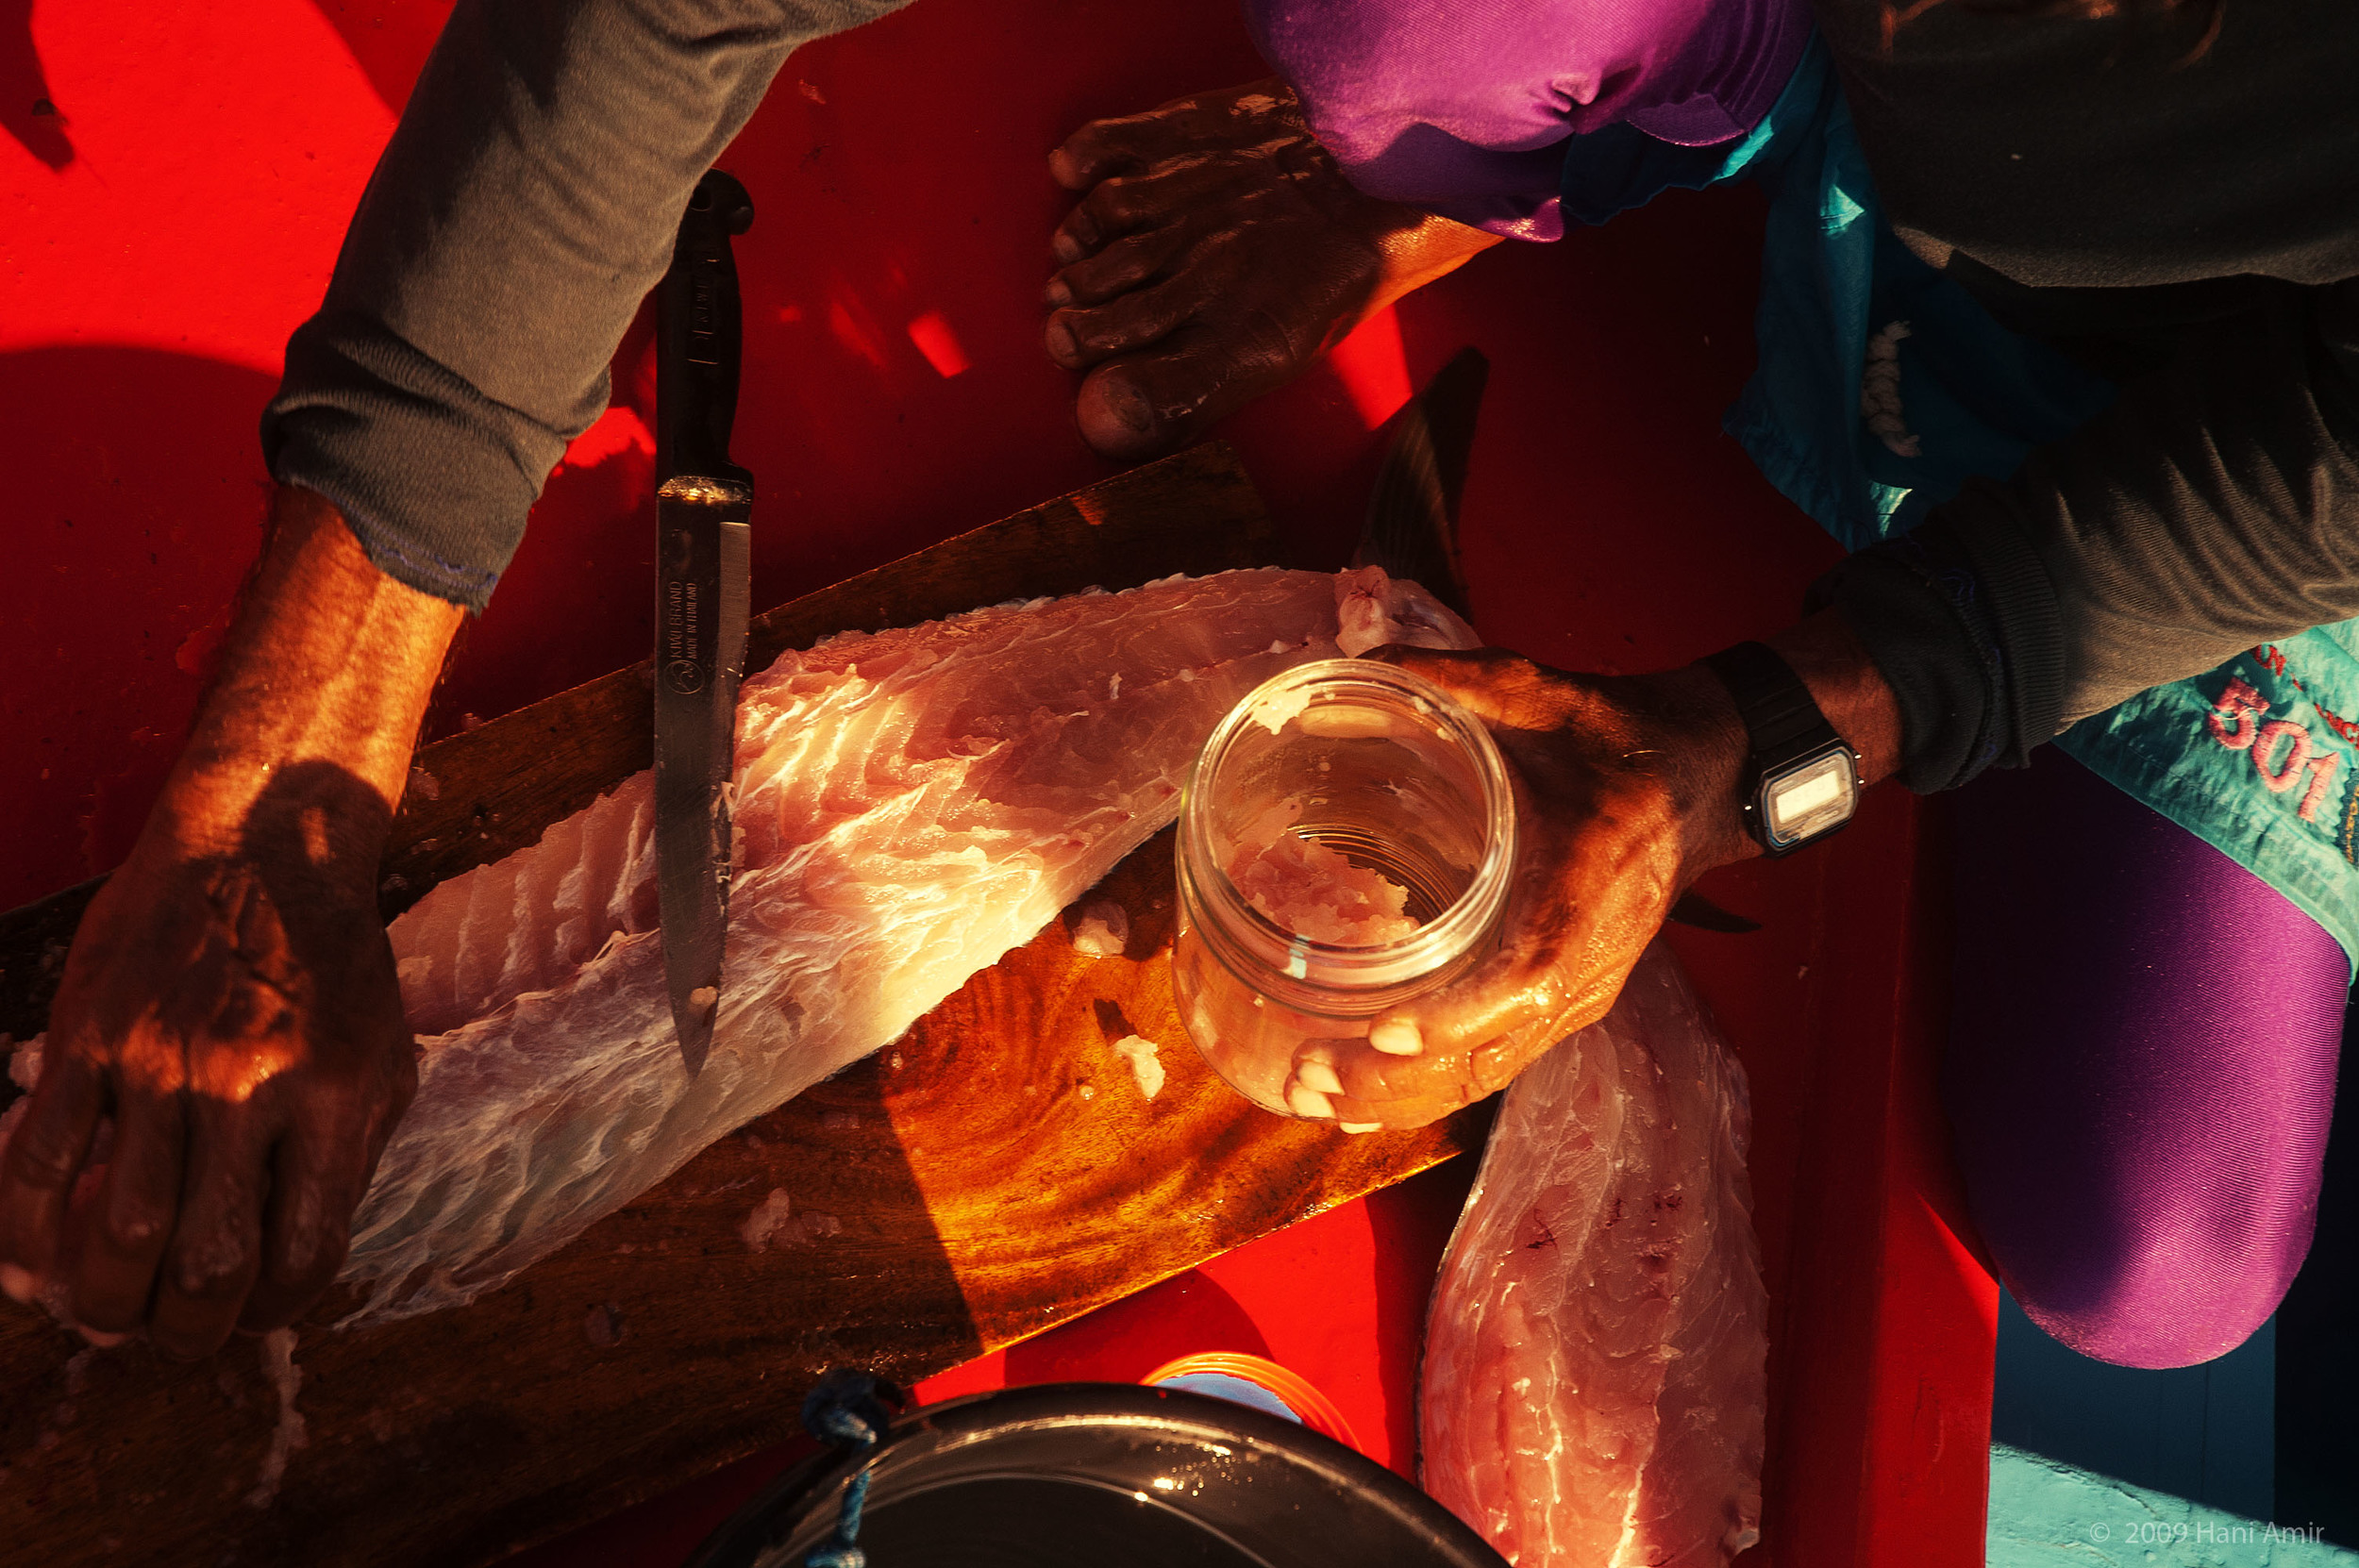 A fisherman collects the chum he has createdinto a water-tight glass jar